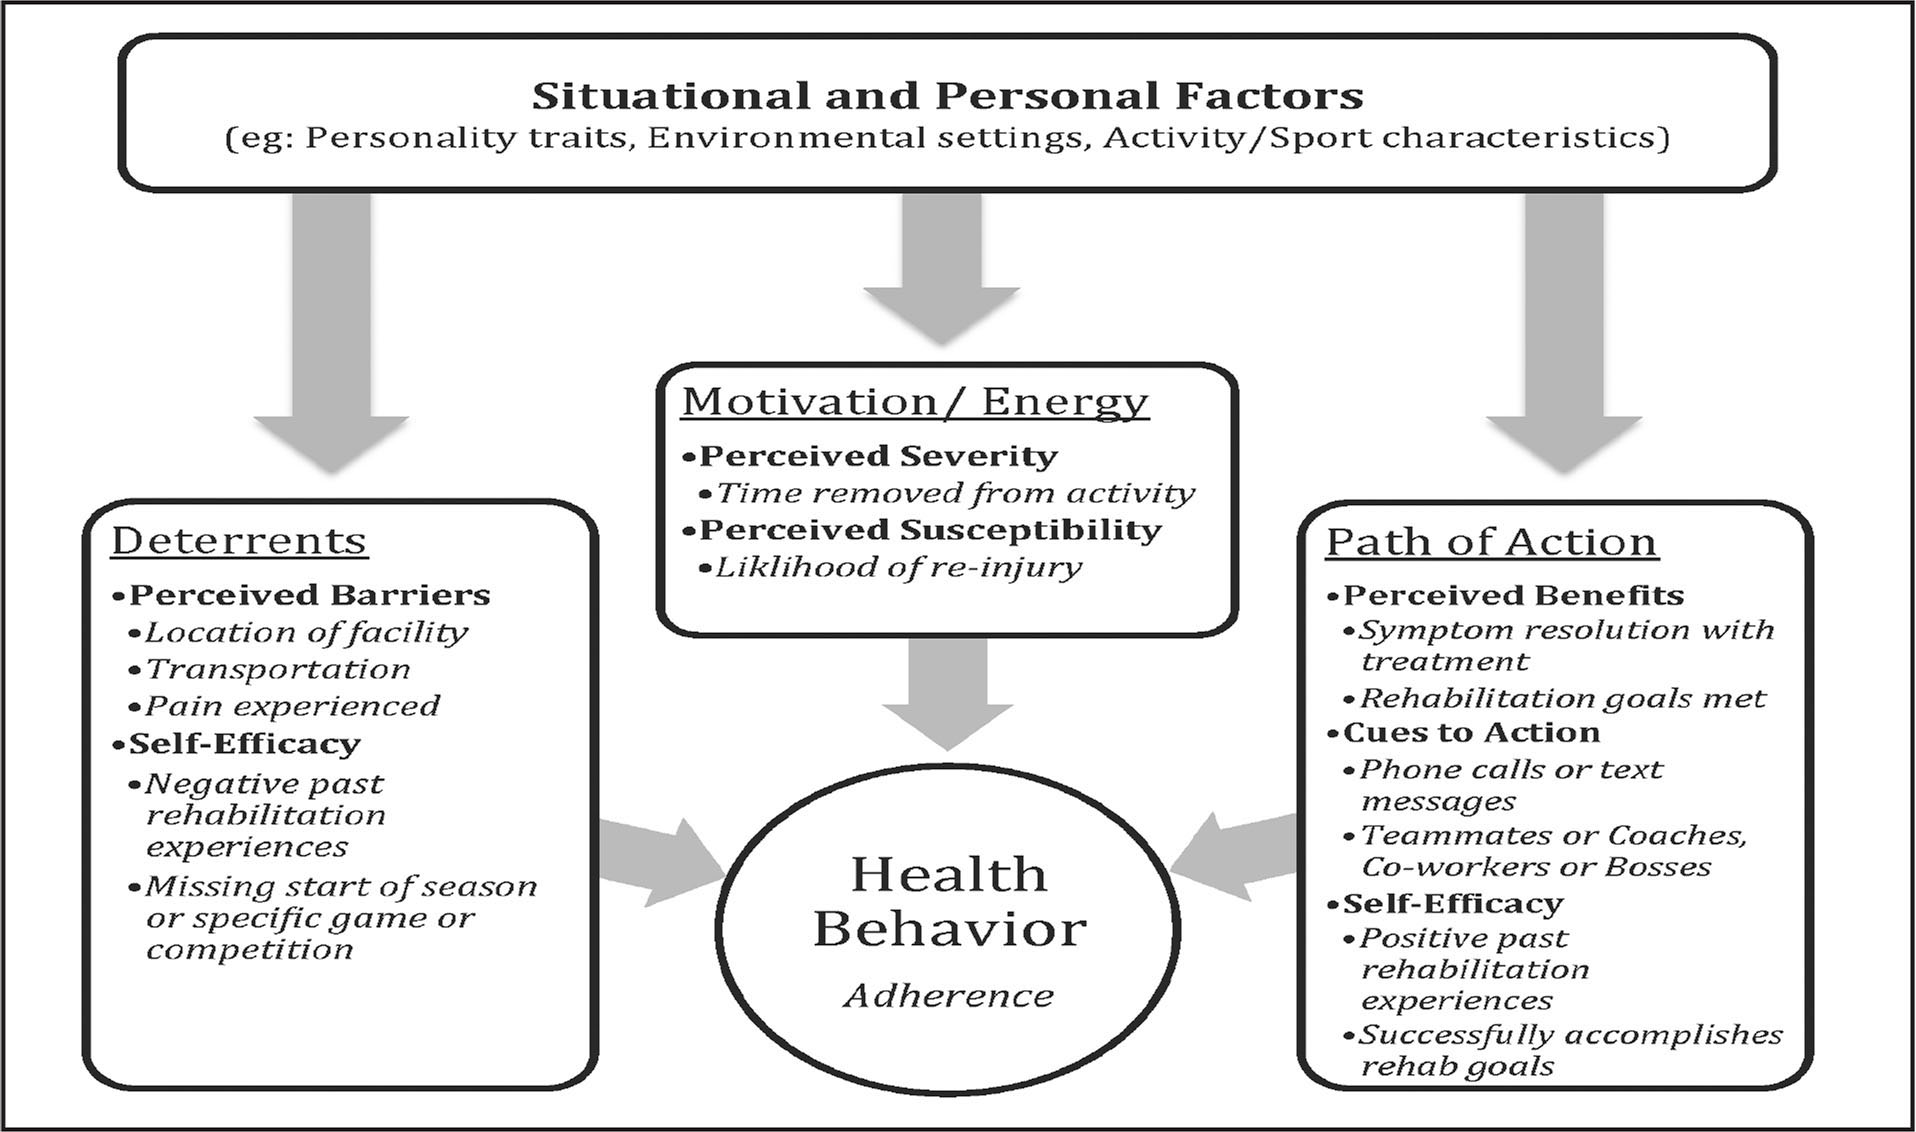 exercising and health belief model The health belief model (hbm) is a psychological health behavior change model developed to explain and predict health-related behaviors, particularly in regard to the uptake of health services the health belief model was developed in the 1950s by social psychologists at the us public health service and remains one of the best known and most widely used theories in health behavior research.